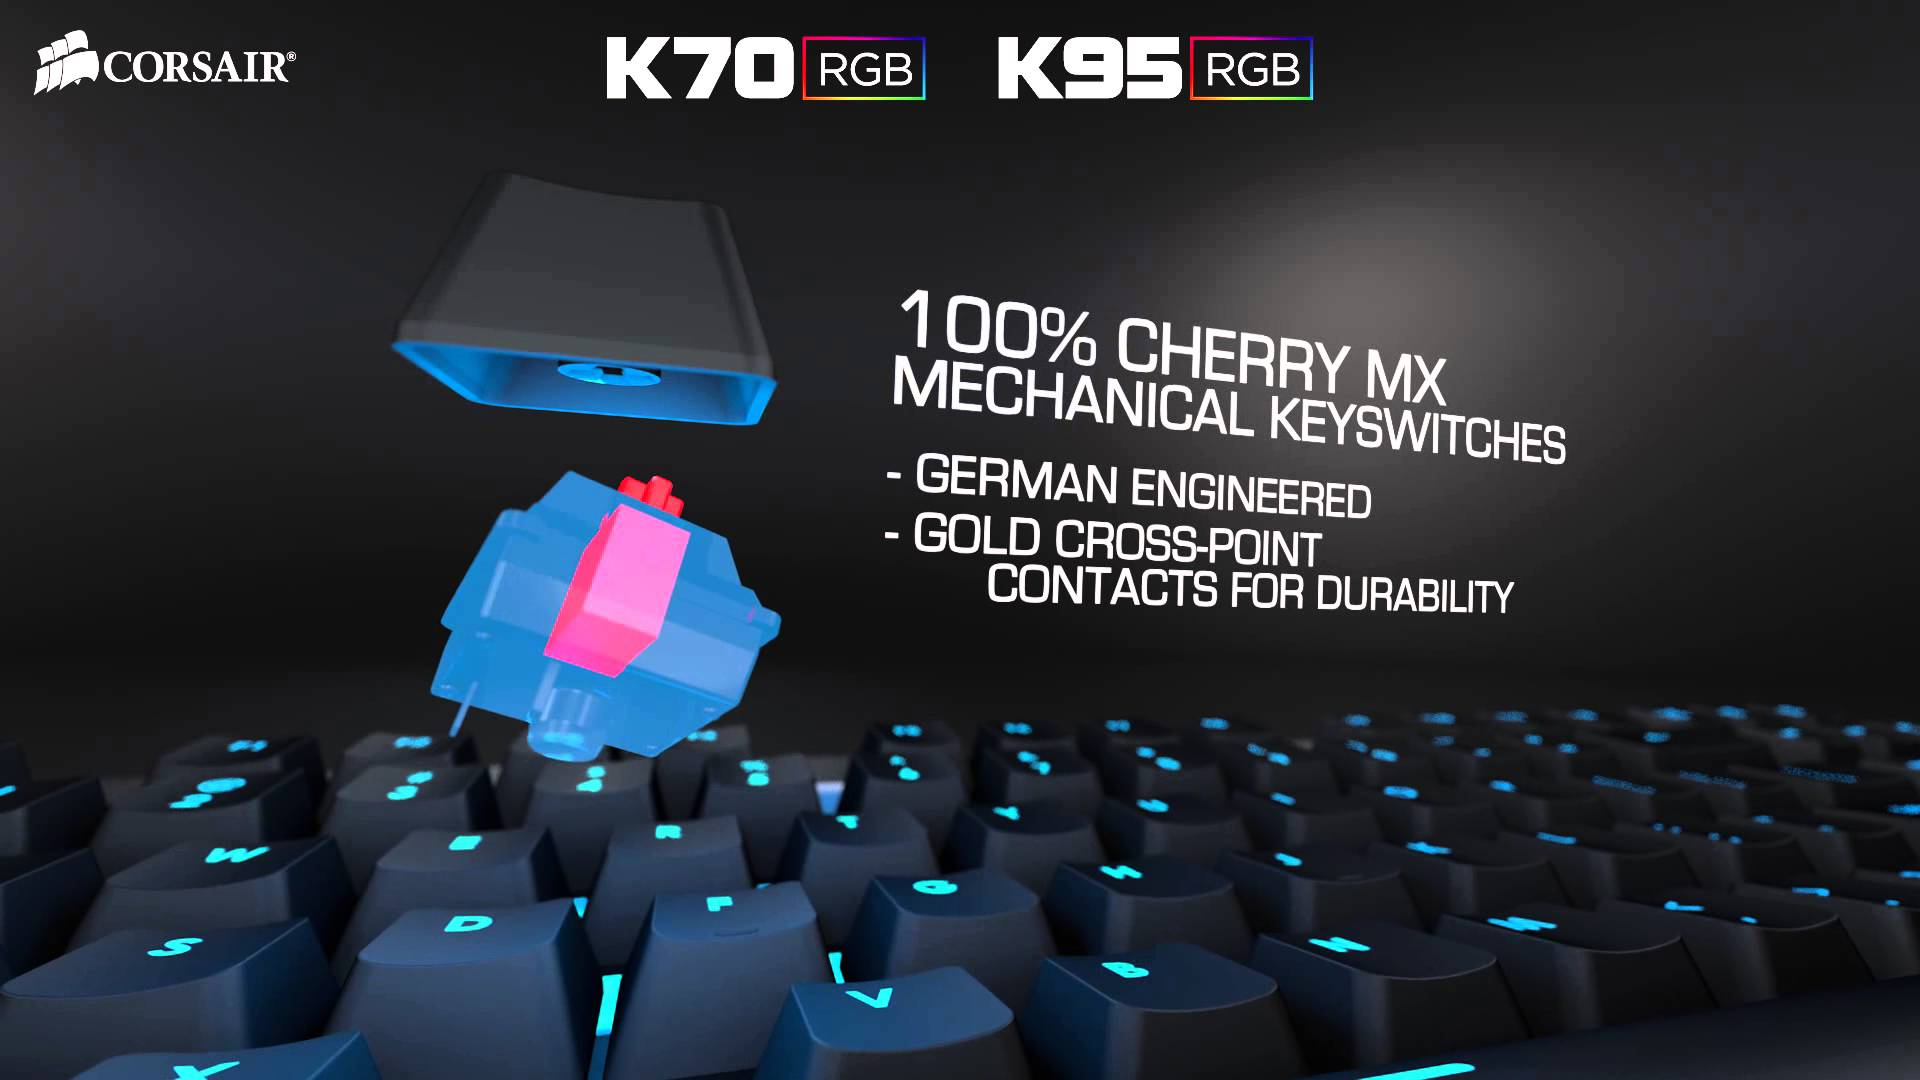 Used Like New Corsair Gaming K95 Mechanical Keyboard Rgb K66 Cherry Mx Red Black Color Slide 1 Of 12show Larger Image Introducing The K70 And